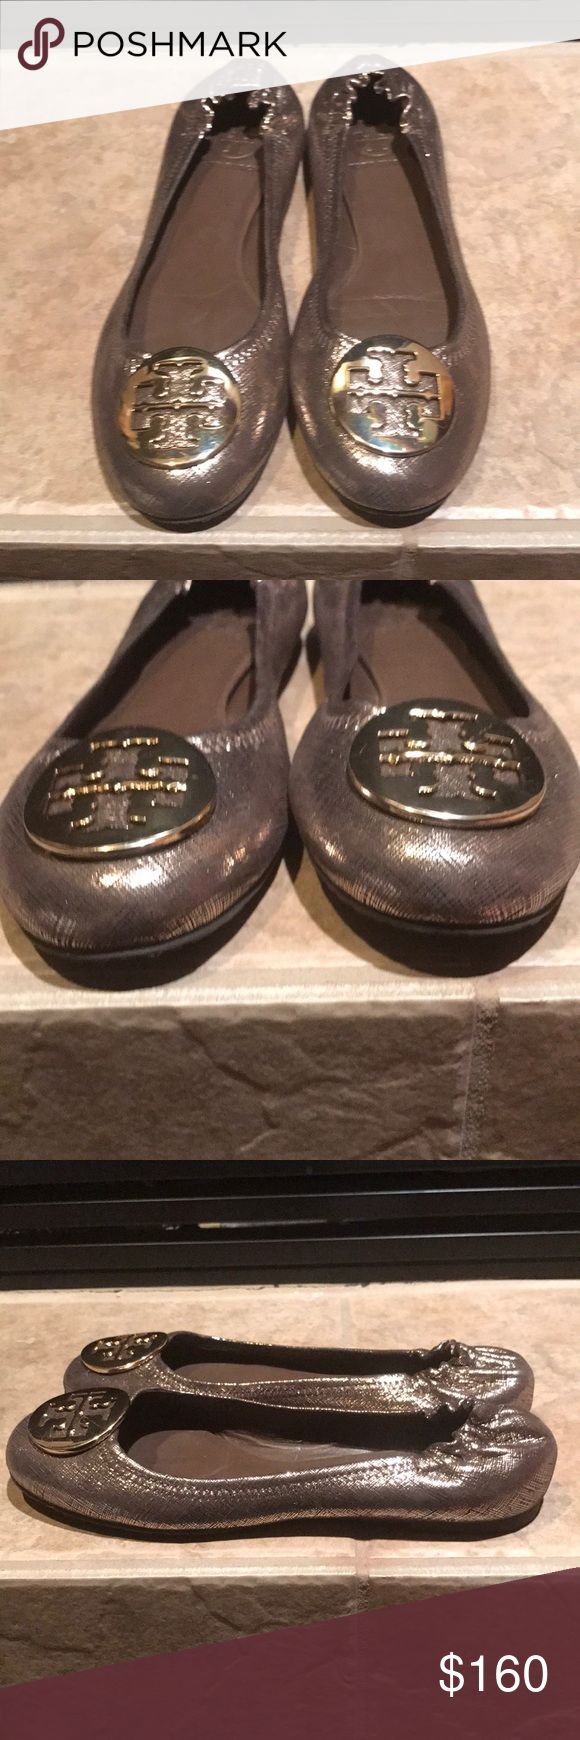 Tory Burch Reva Metallic Flats Excellent condition just like new floor  model price tag residue on